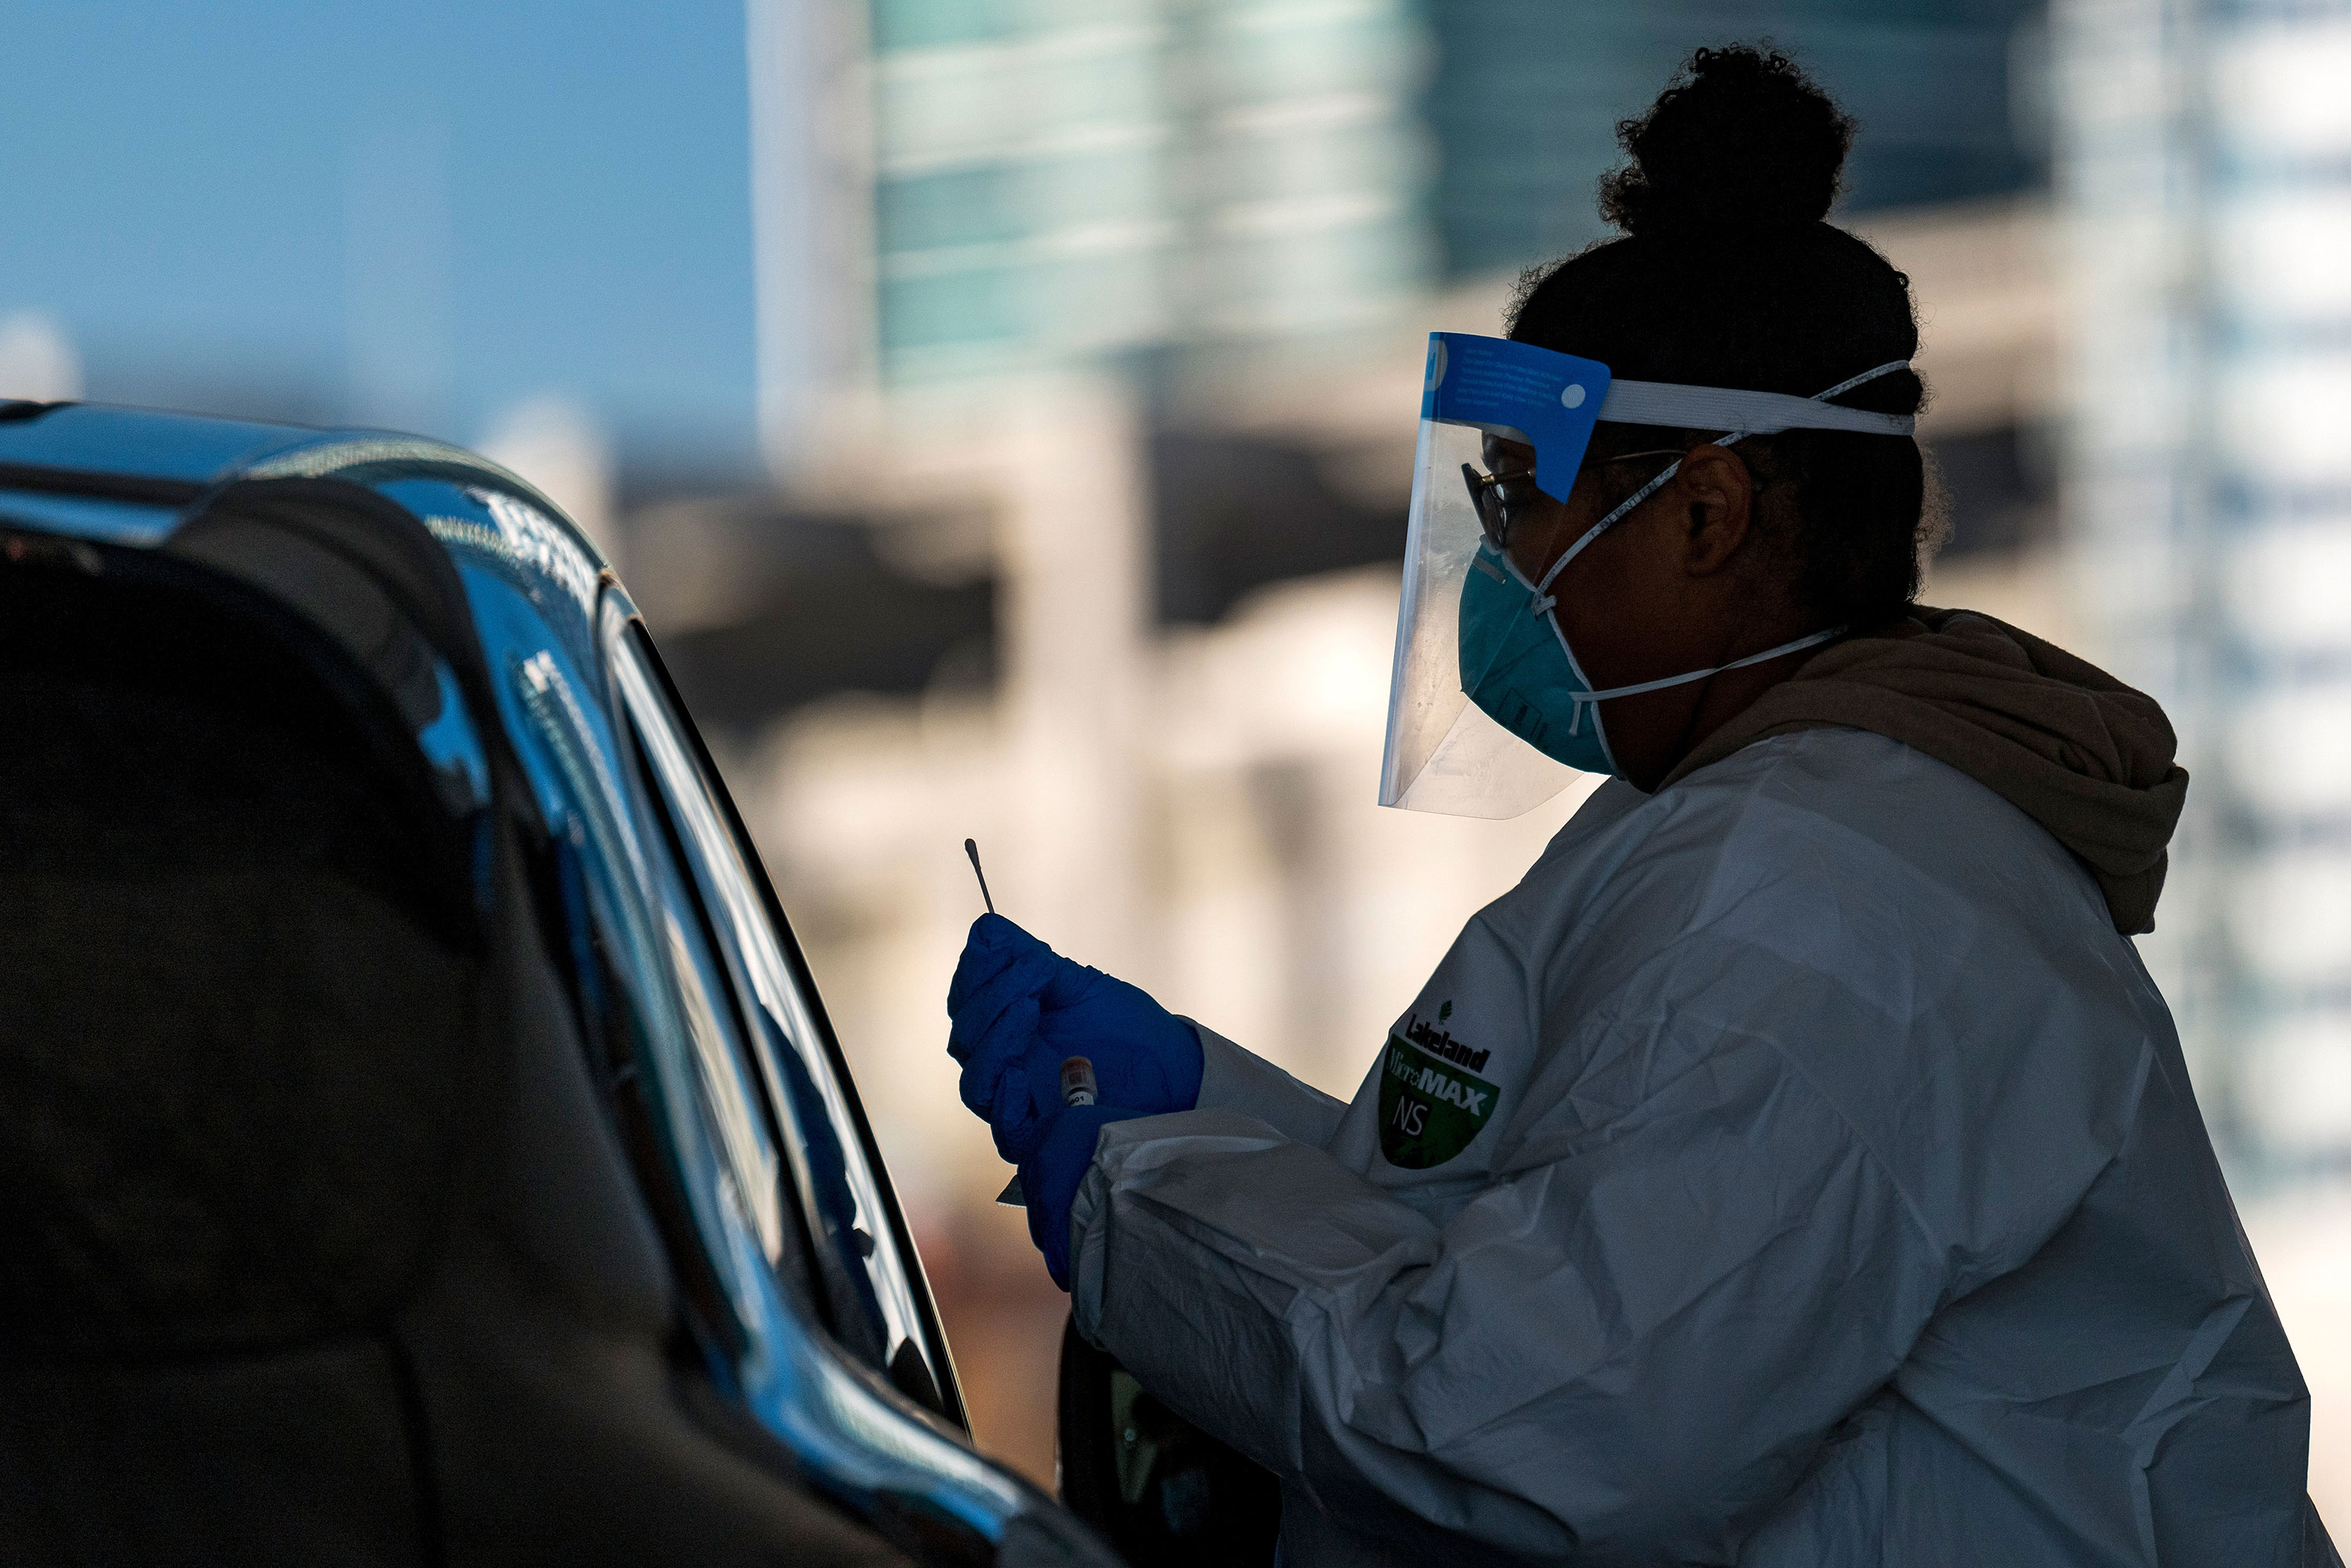 A healthcare worker administers a nasal swab at a Covid-19 testing site in San Francisco, California, on December 1.